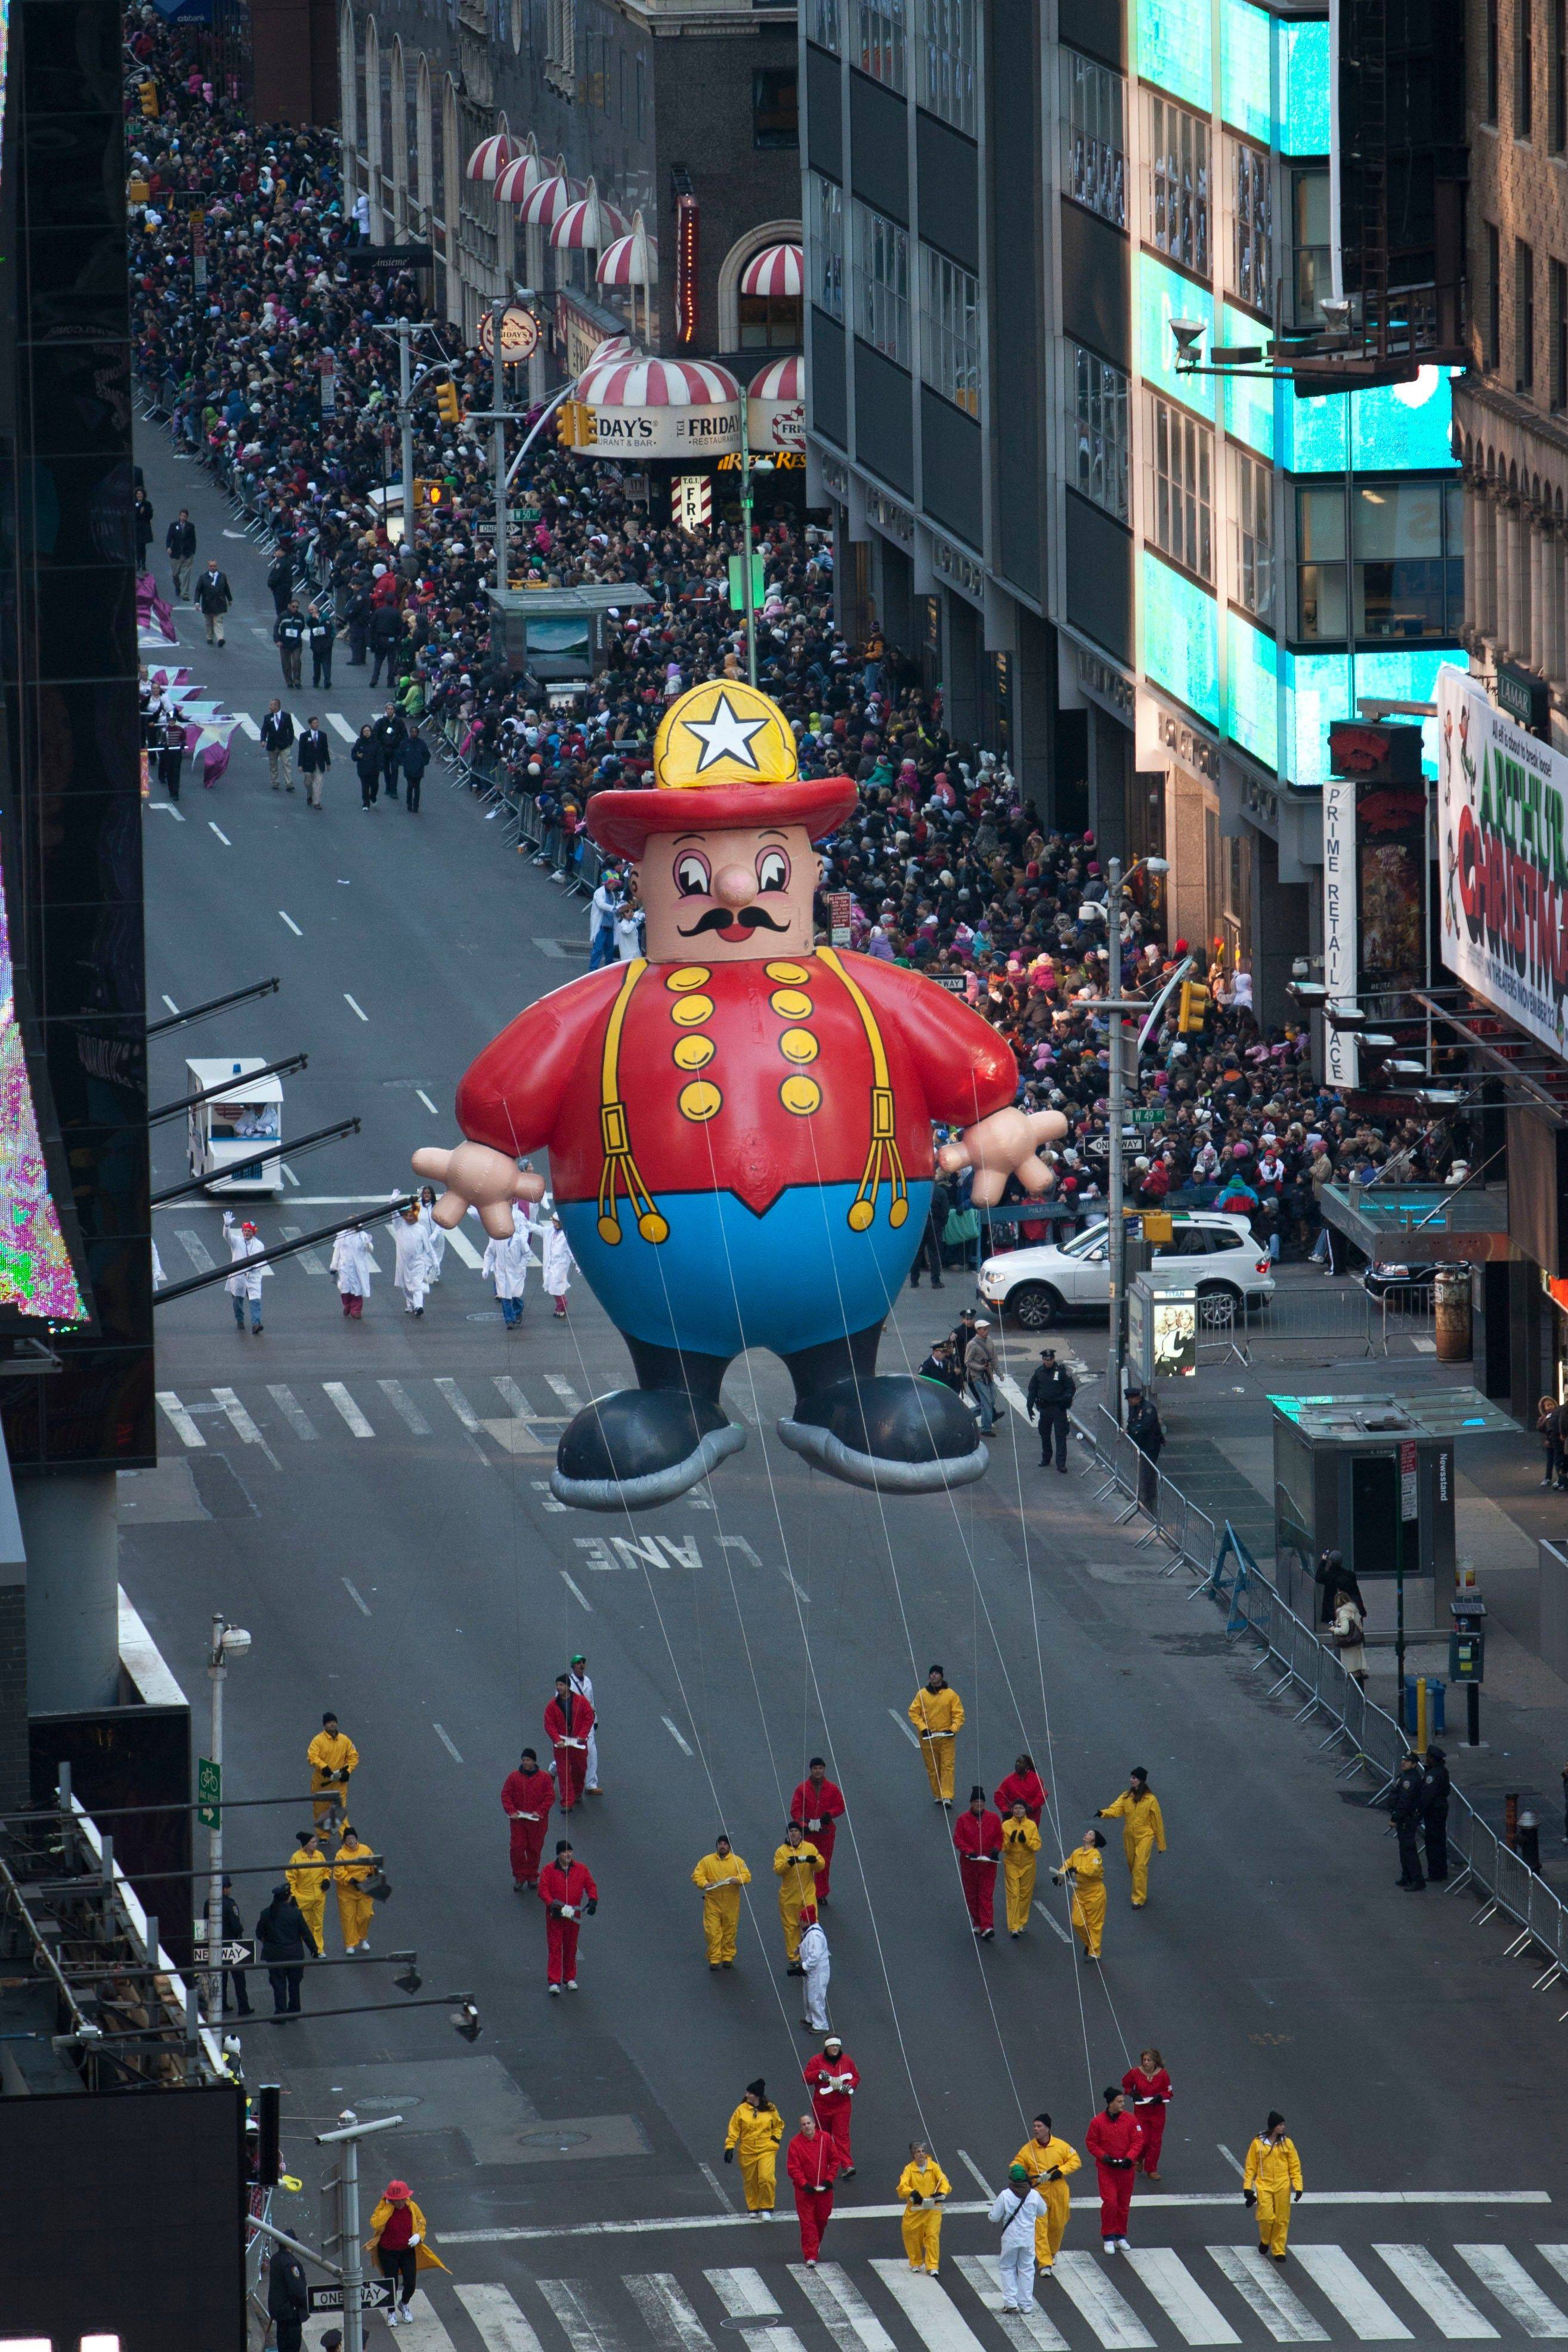 The 'Harold the Fireman' float is seen during the Macy's Thanksgiving Day Parade in Time Square in New York on Thursday, Nov. 24, 2011. The parade premiered in 1924, this is its 85th year.